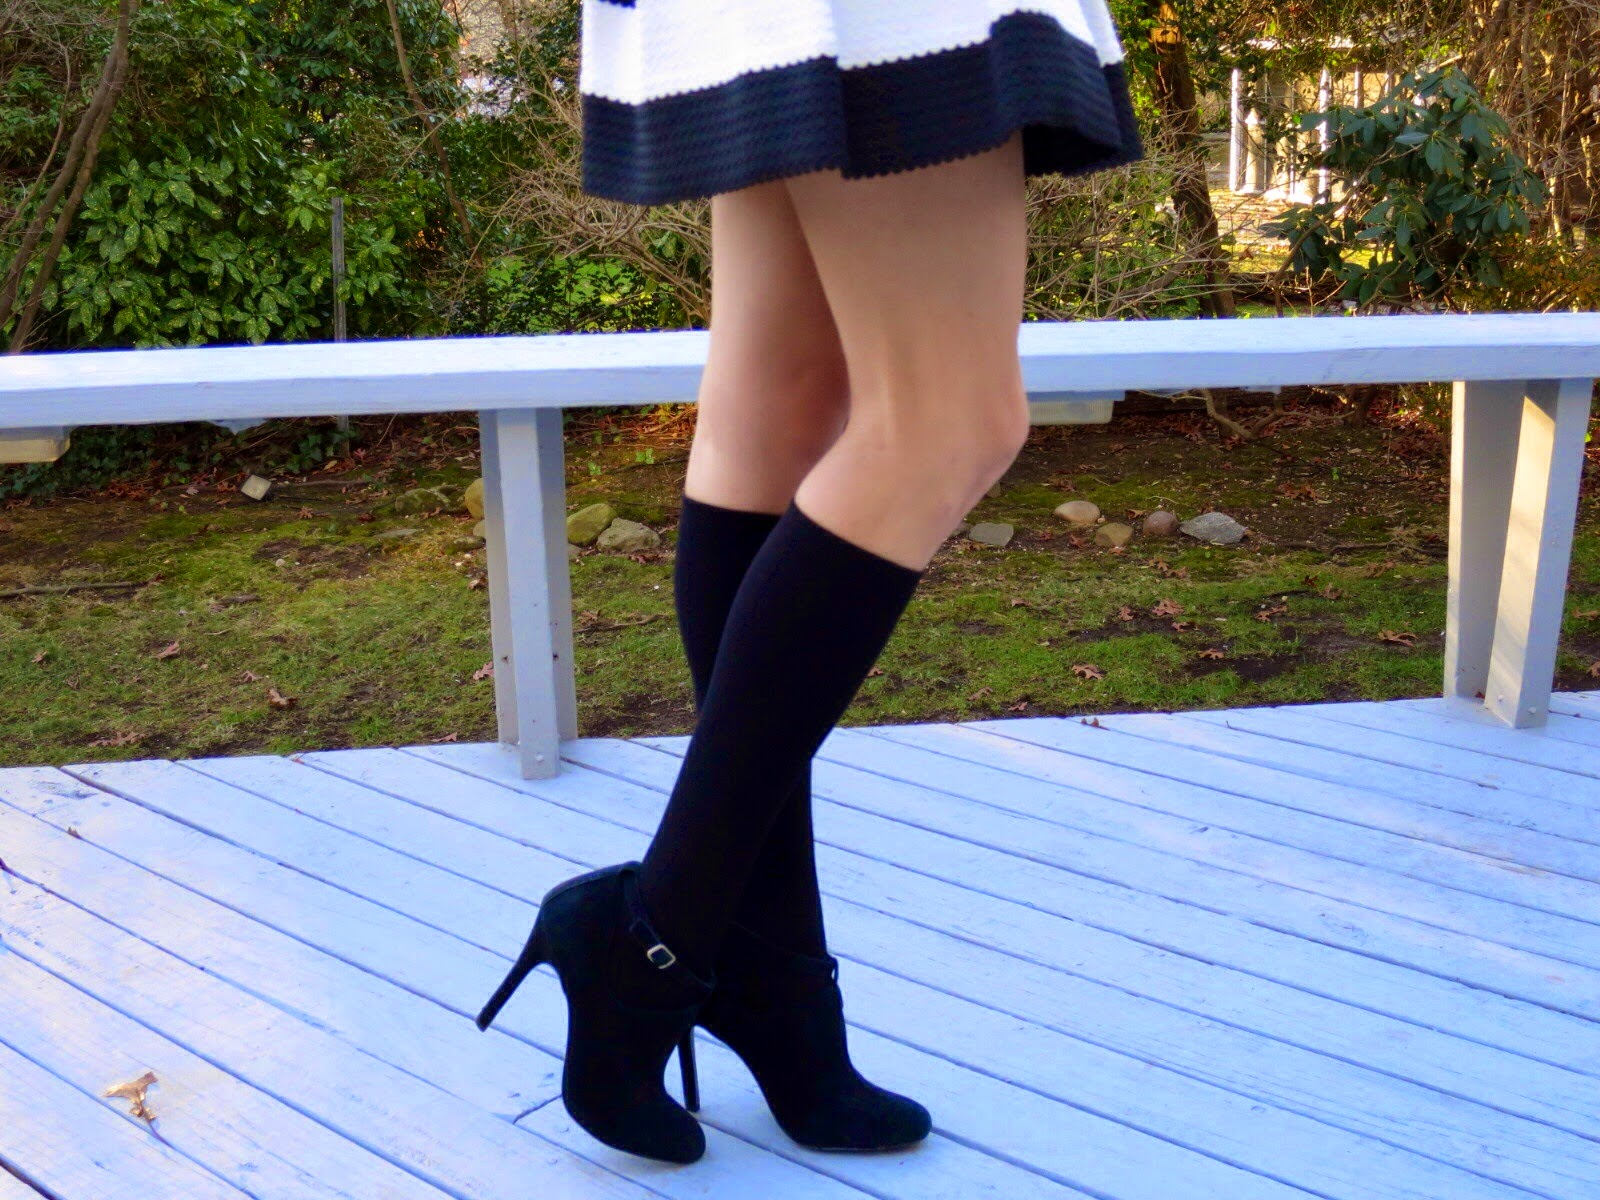 kushy foot knee high socks